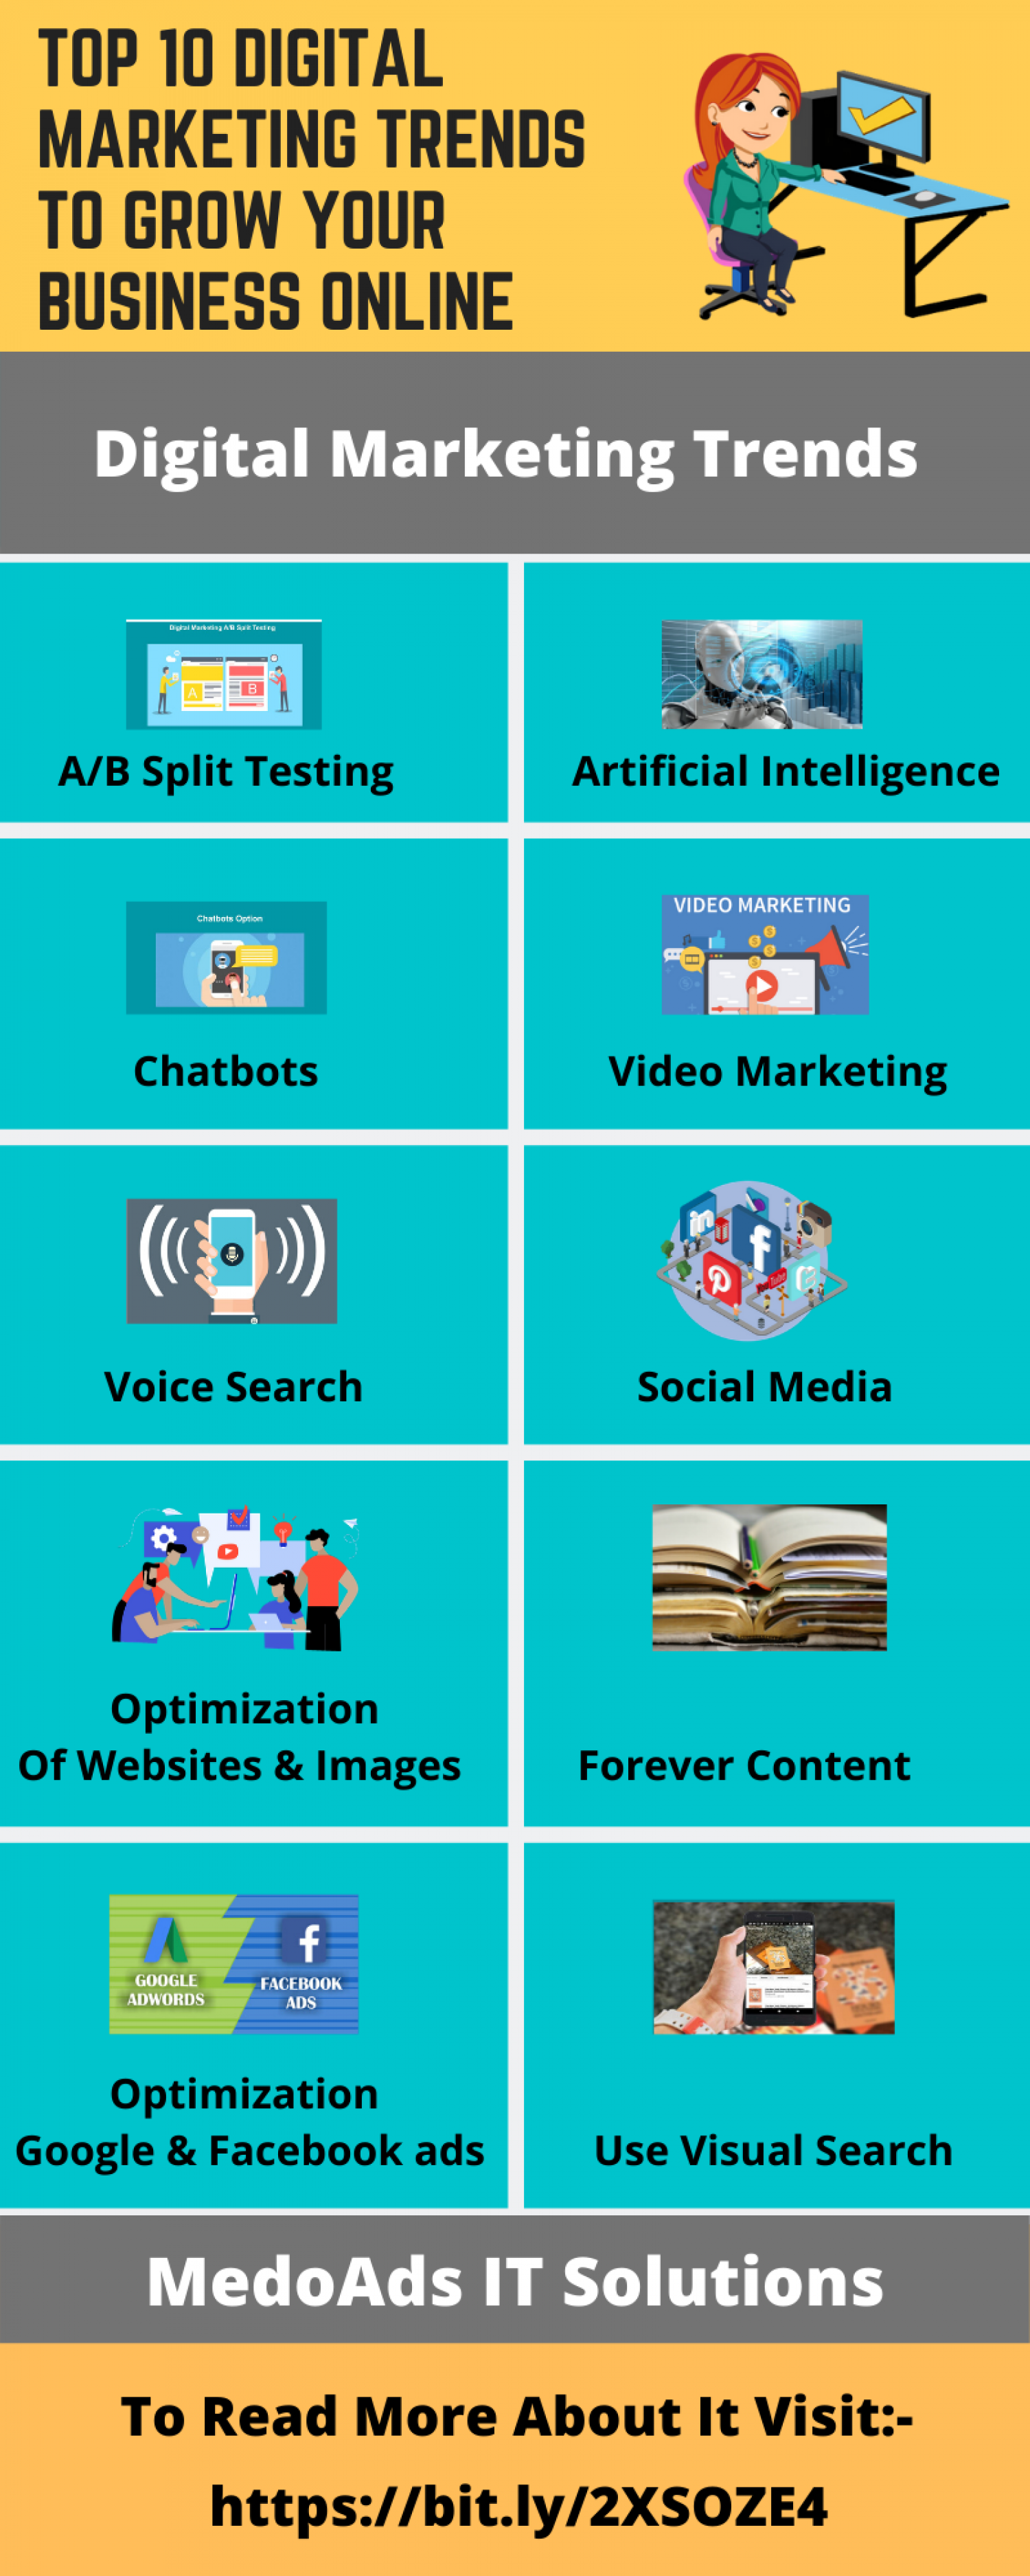 Top 10 Digital Marketing trends to grow your business online Infographic